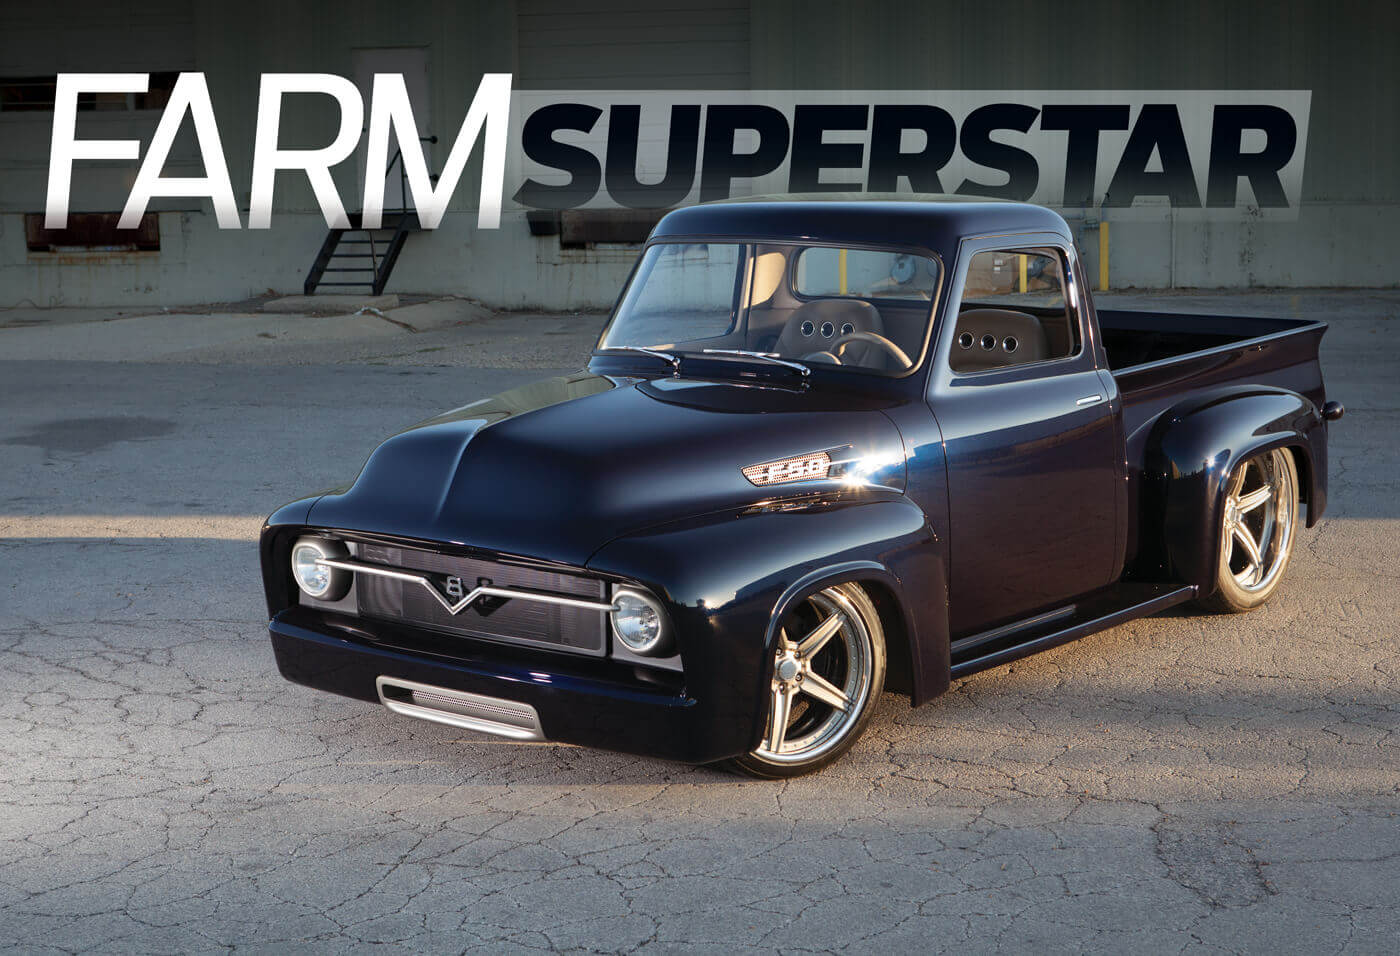 Farm Superstar Kindig It Designs 54 Ford F 100 Street Trucks 1954 Chevy Truck Bed